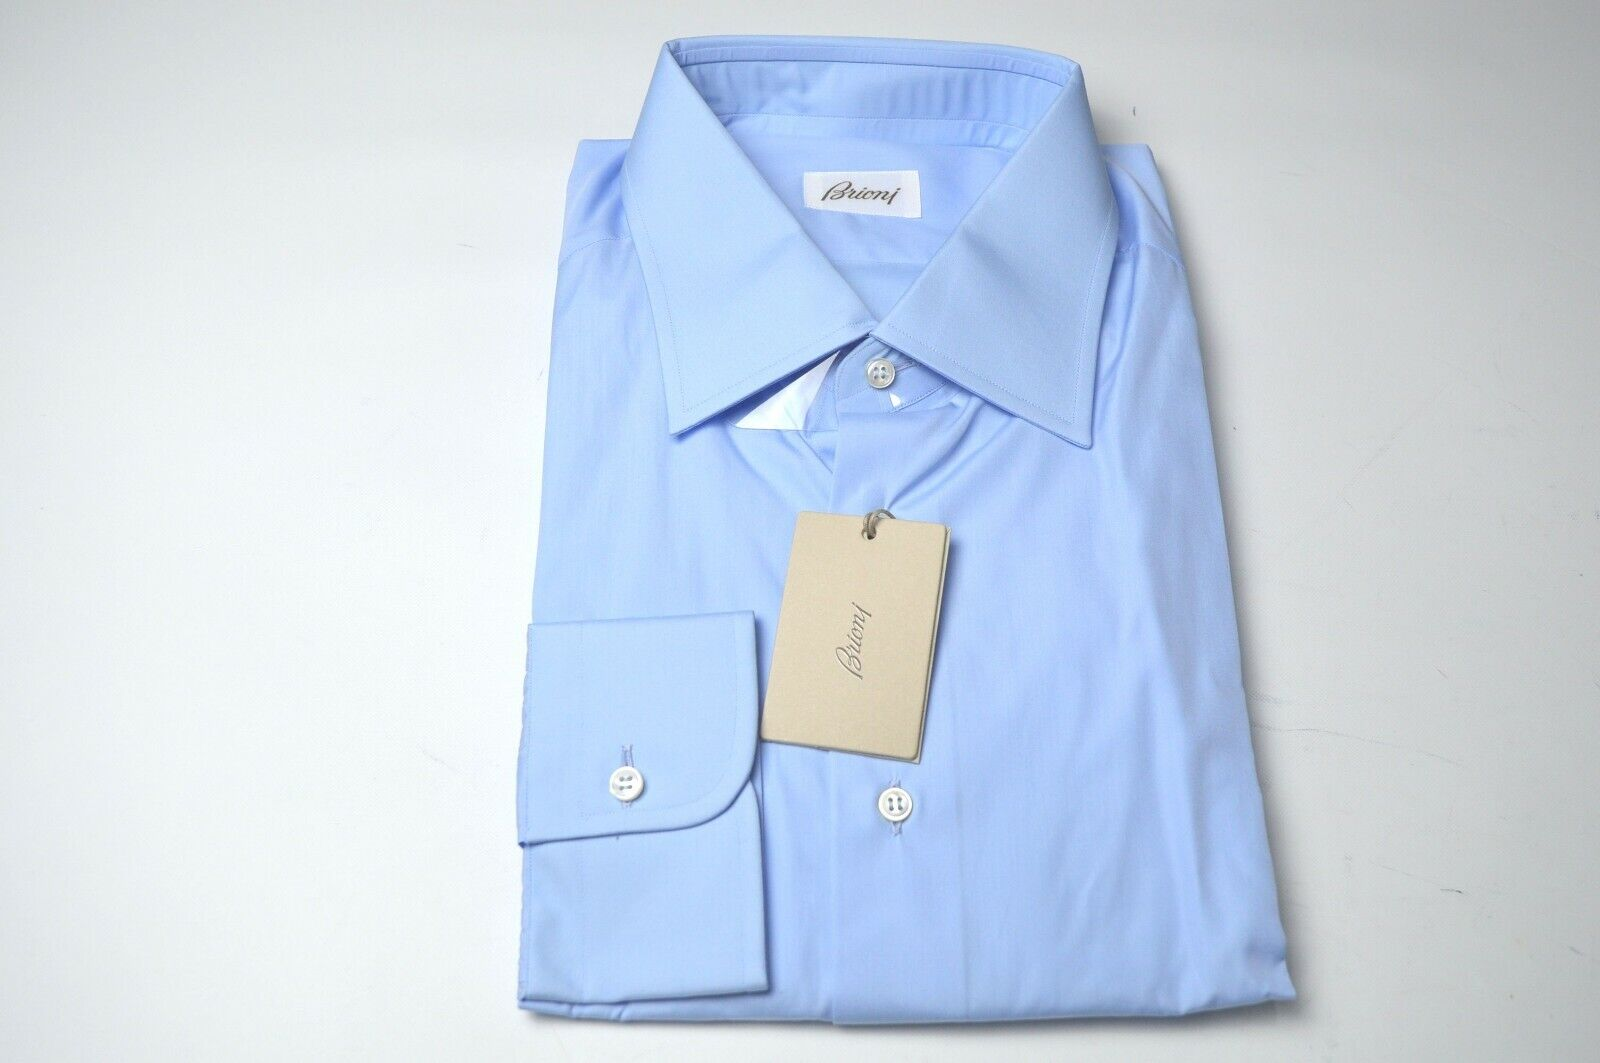 NEW  BRIONI Dress  SHIRT 100% Cotton Größe 17.5 Us 44 Eu  (ARA226)